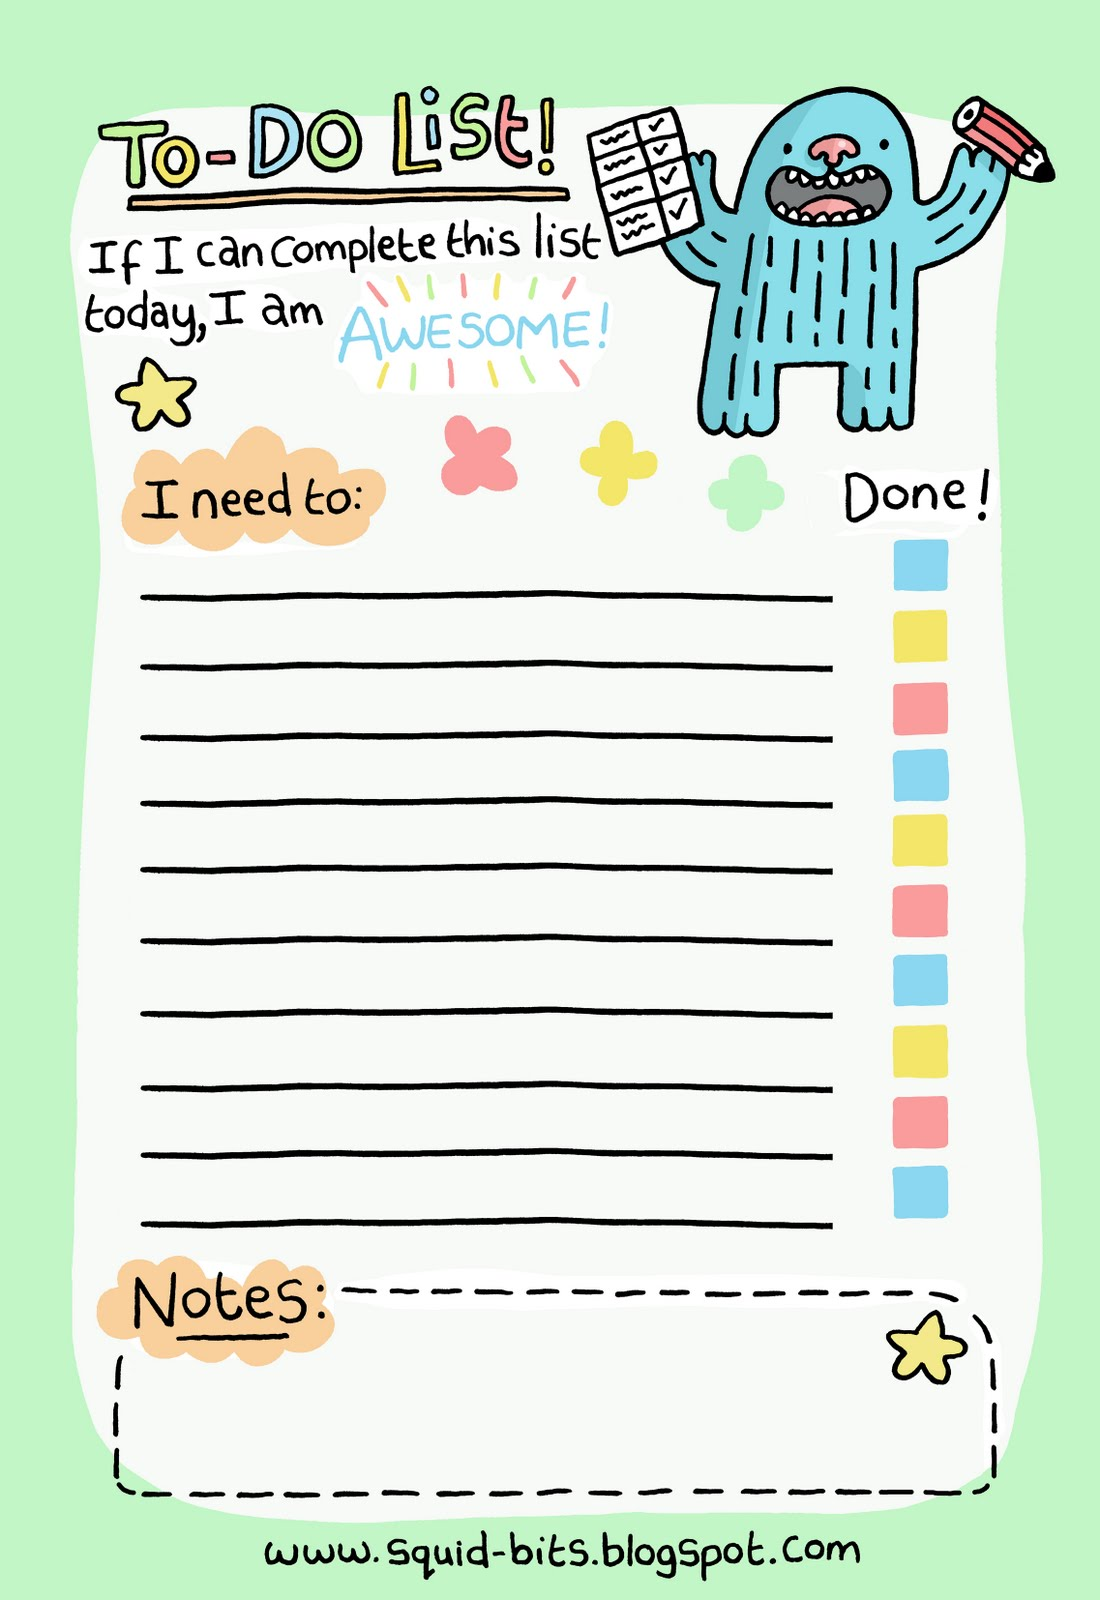 To Do List. Isn't it cute? Copyright http://www.squid-bits.blogspot